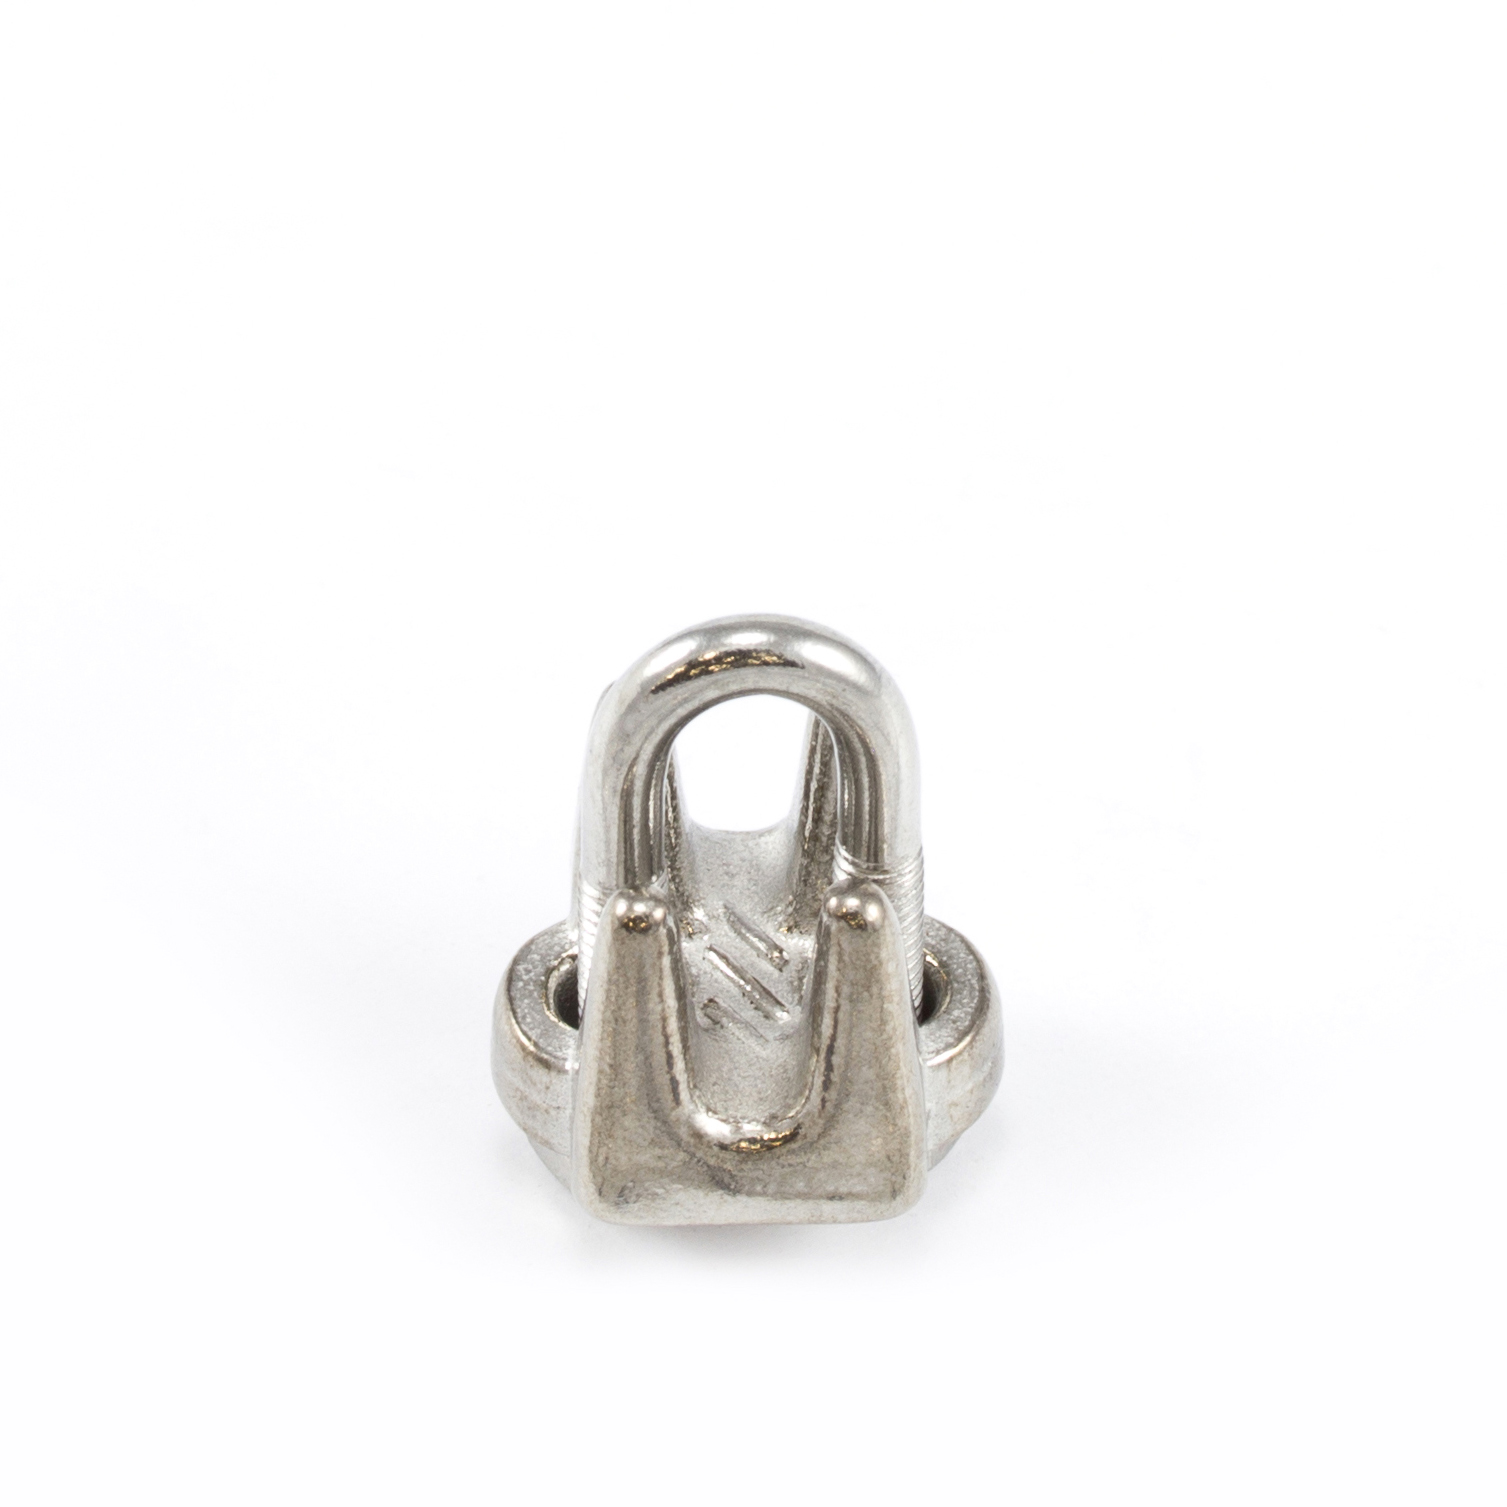 Thumbnail Polyfab Pro Rope Clamp #SS-WRC-03 3.2mm 2